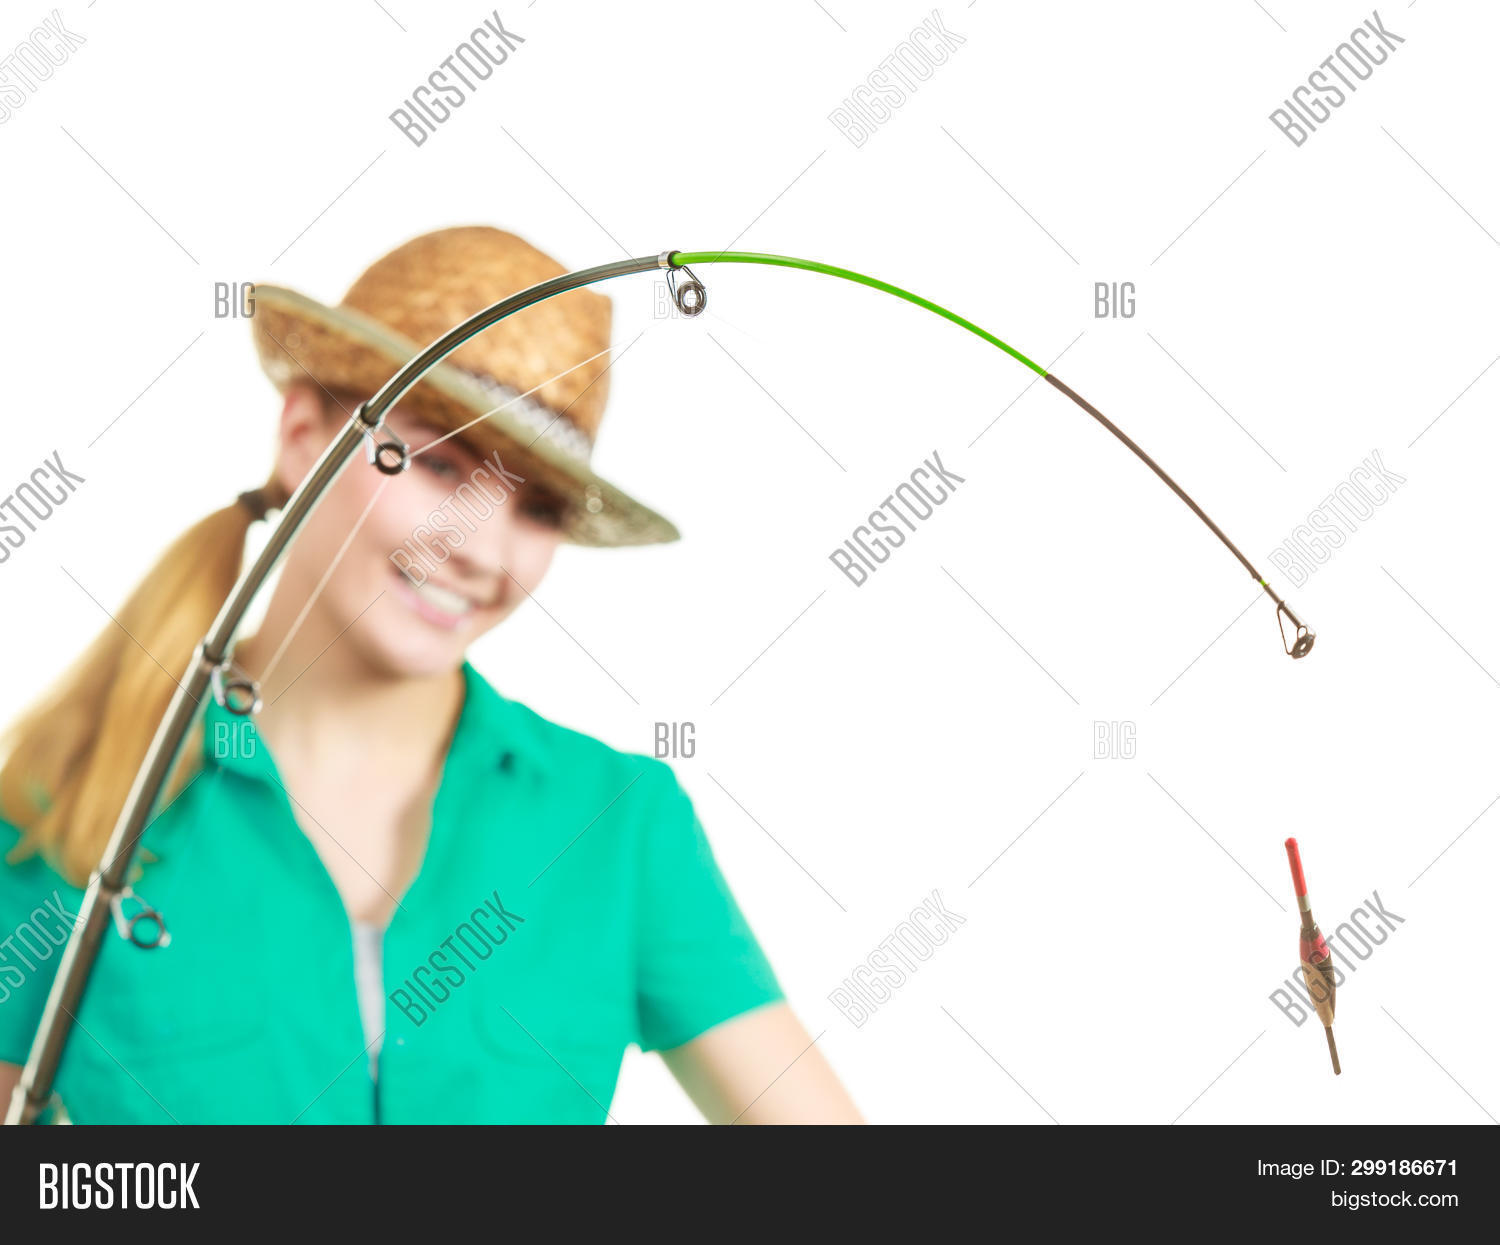 Fishery, Spinning Equipment, Angling Sport And Activity Concept. Happy Smiling Woman With Fishing Ro